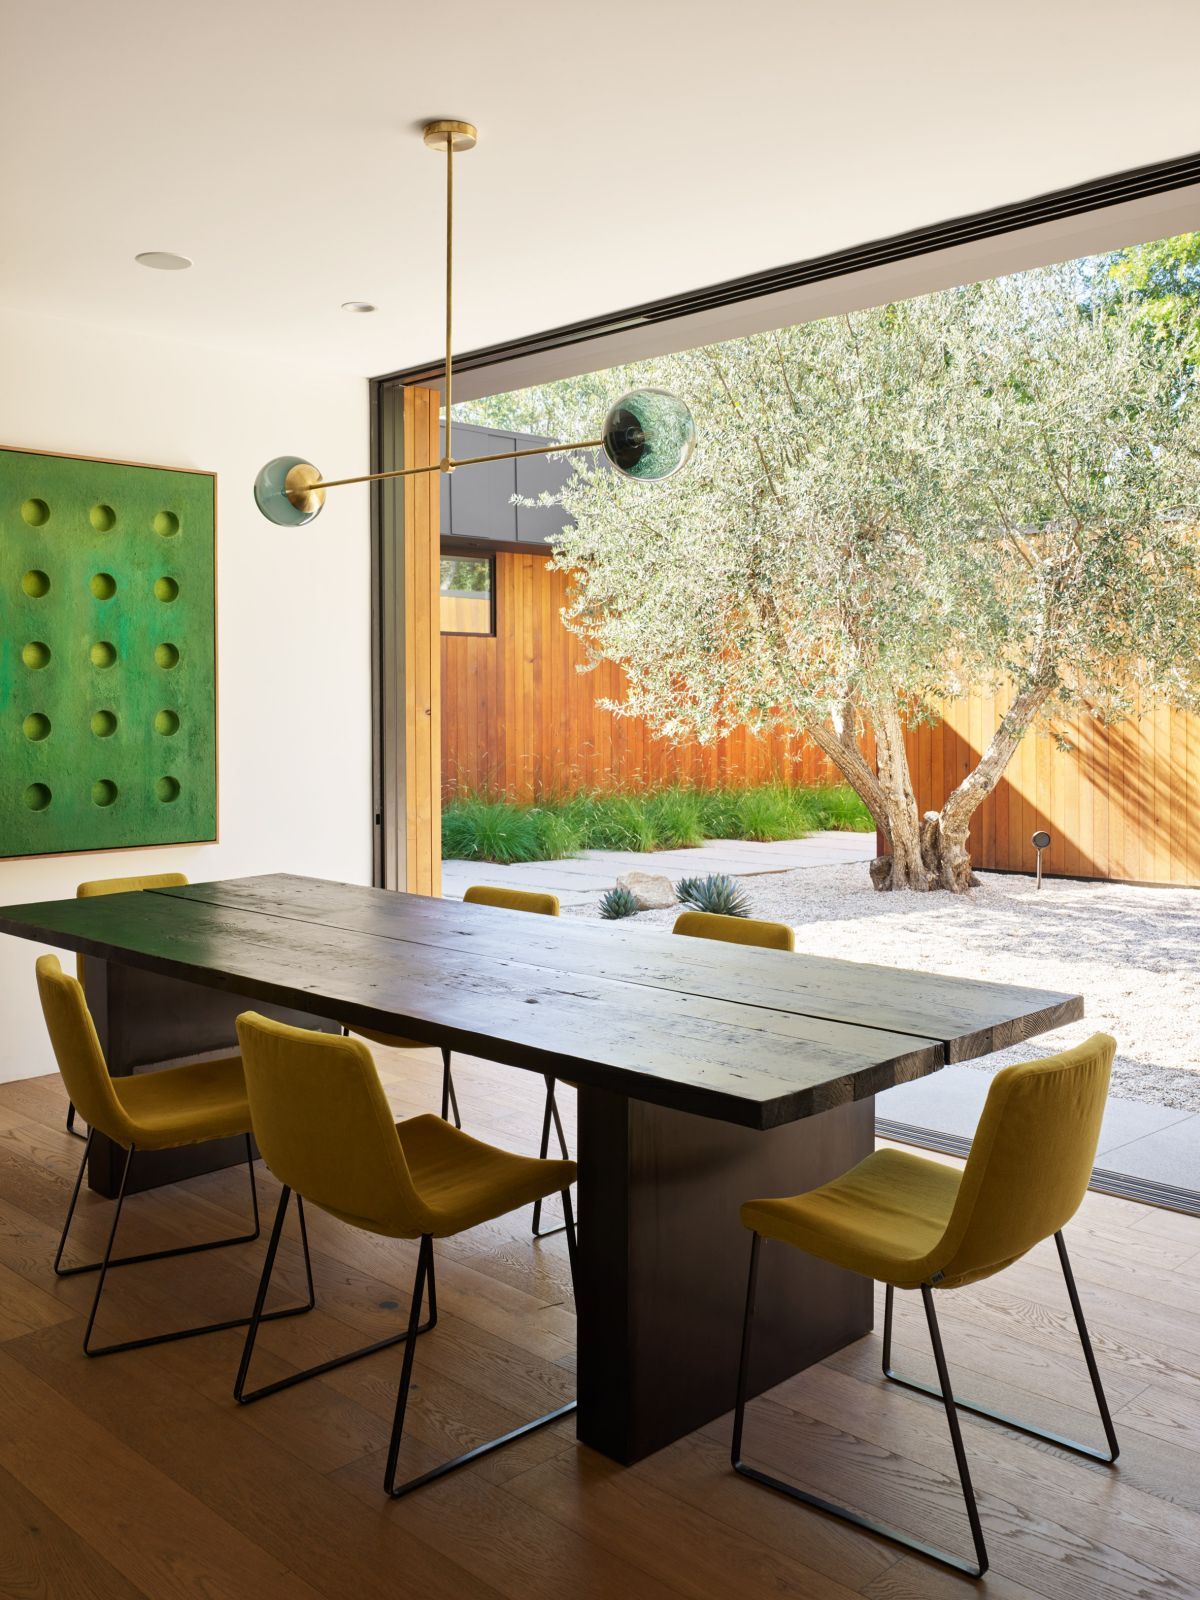 The dining room features a beautiful weathered wood table complemented by stylish yellow chairs